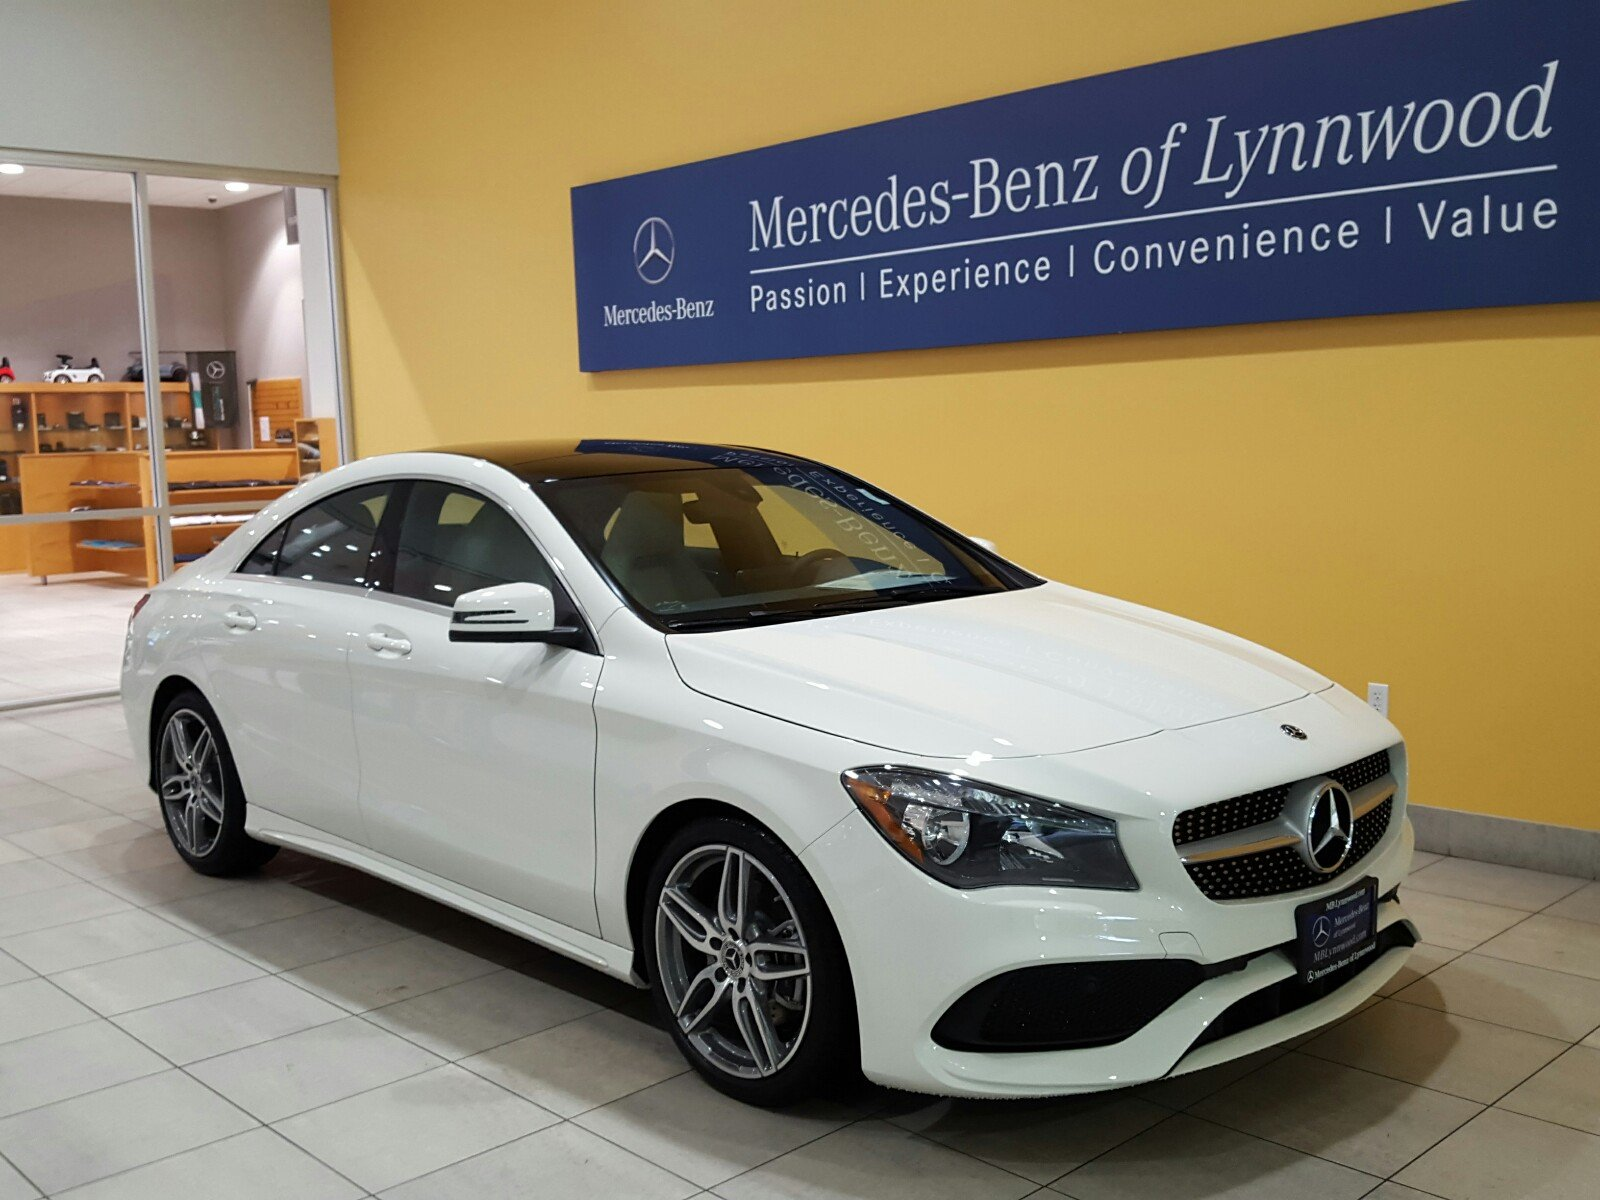 New 2018 mercedes benz cla cla 250 4matic coupe coupe in for Mercedes benz financial payment address